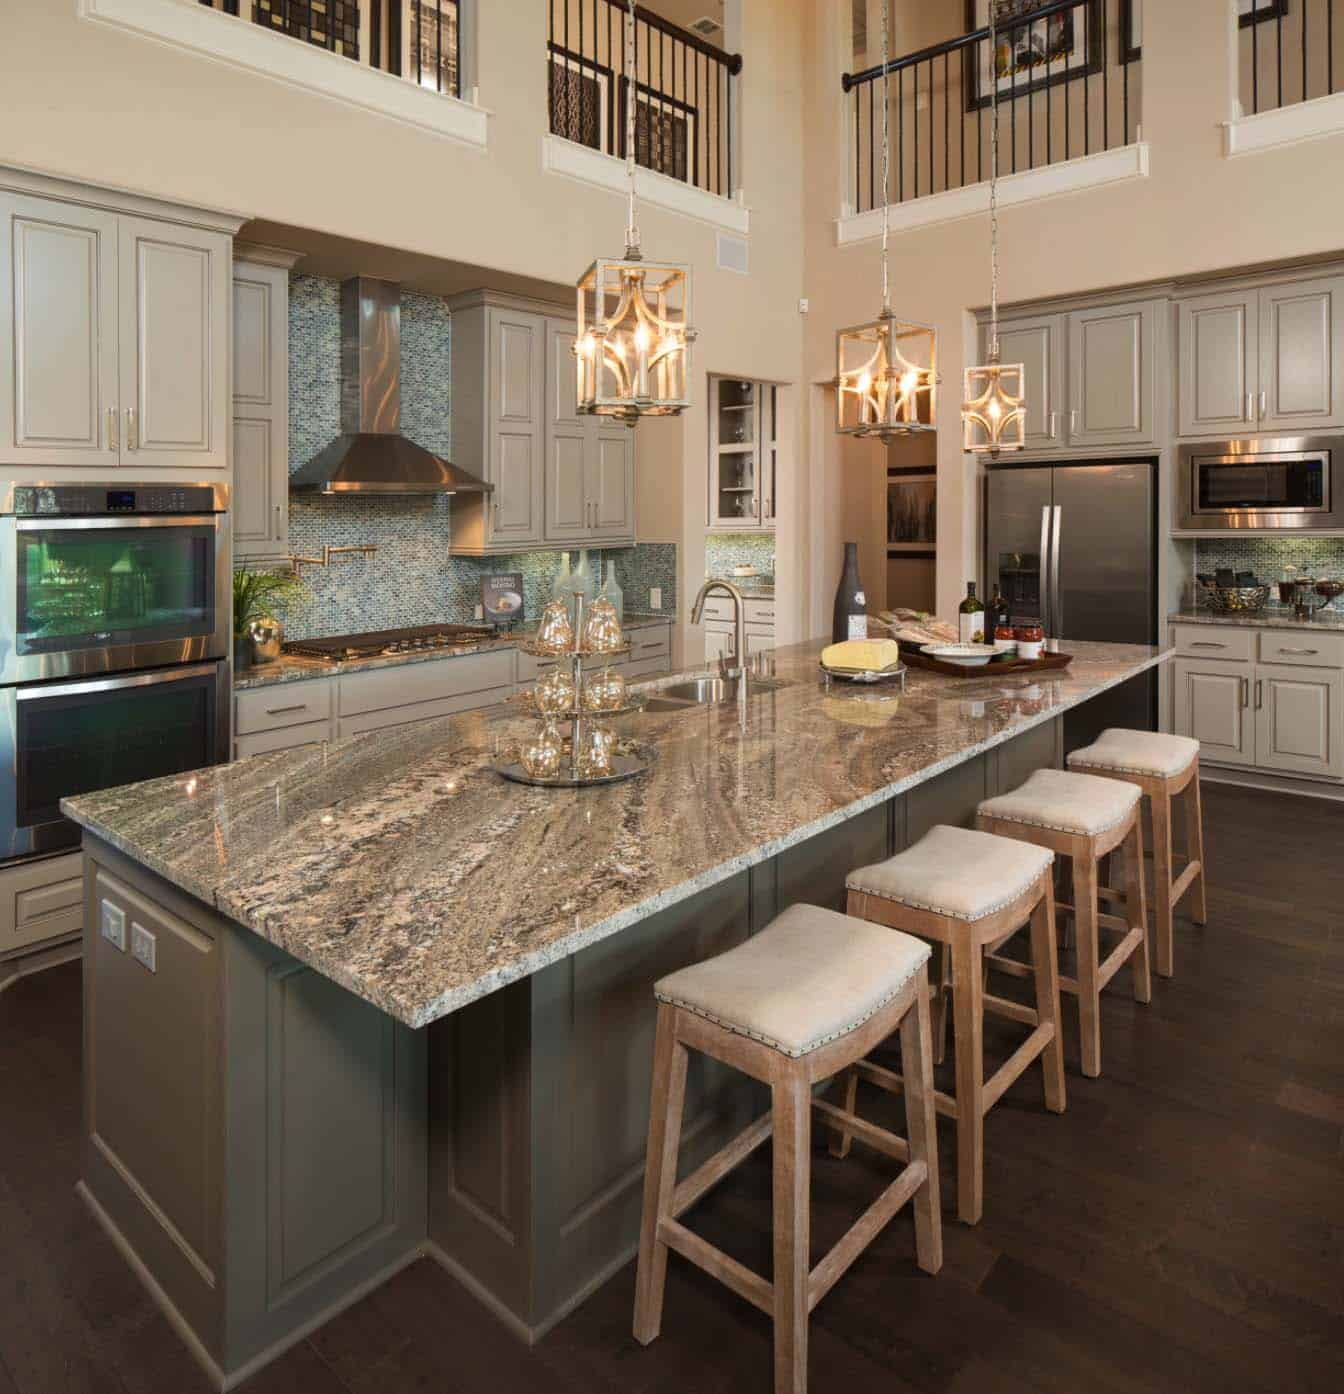 images of kitchen islands 30 brilliant kitchen island ideas that make a statement 5049